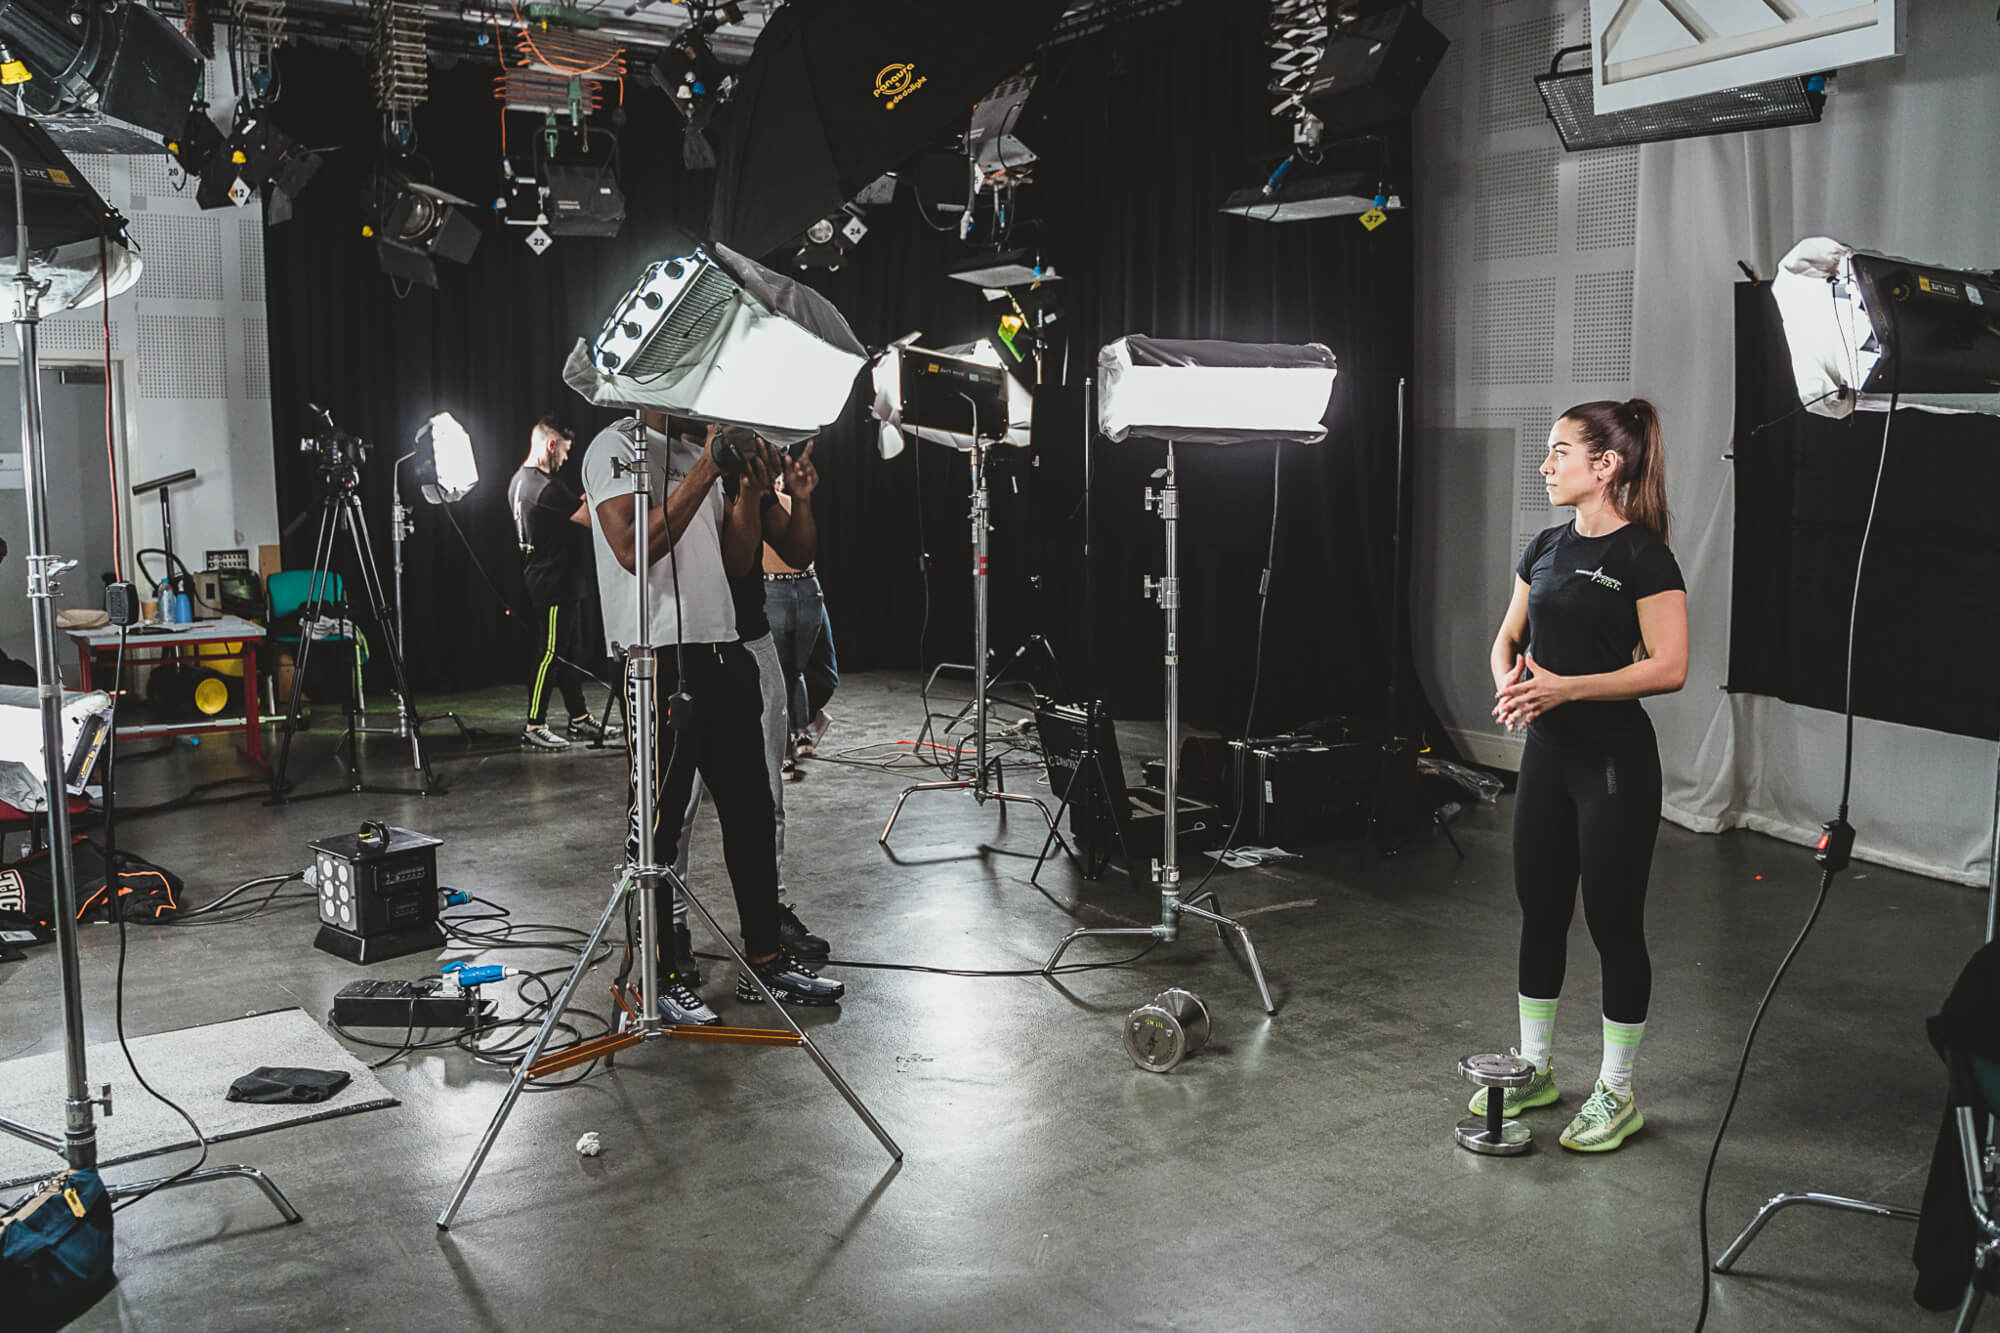 A female models branded gym wear whilst standing by a weight with lights and cameras set up around her in a studio